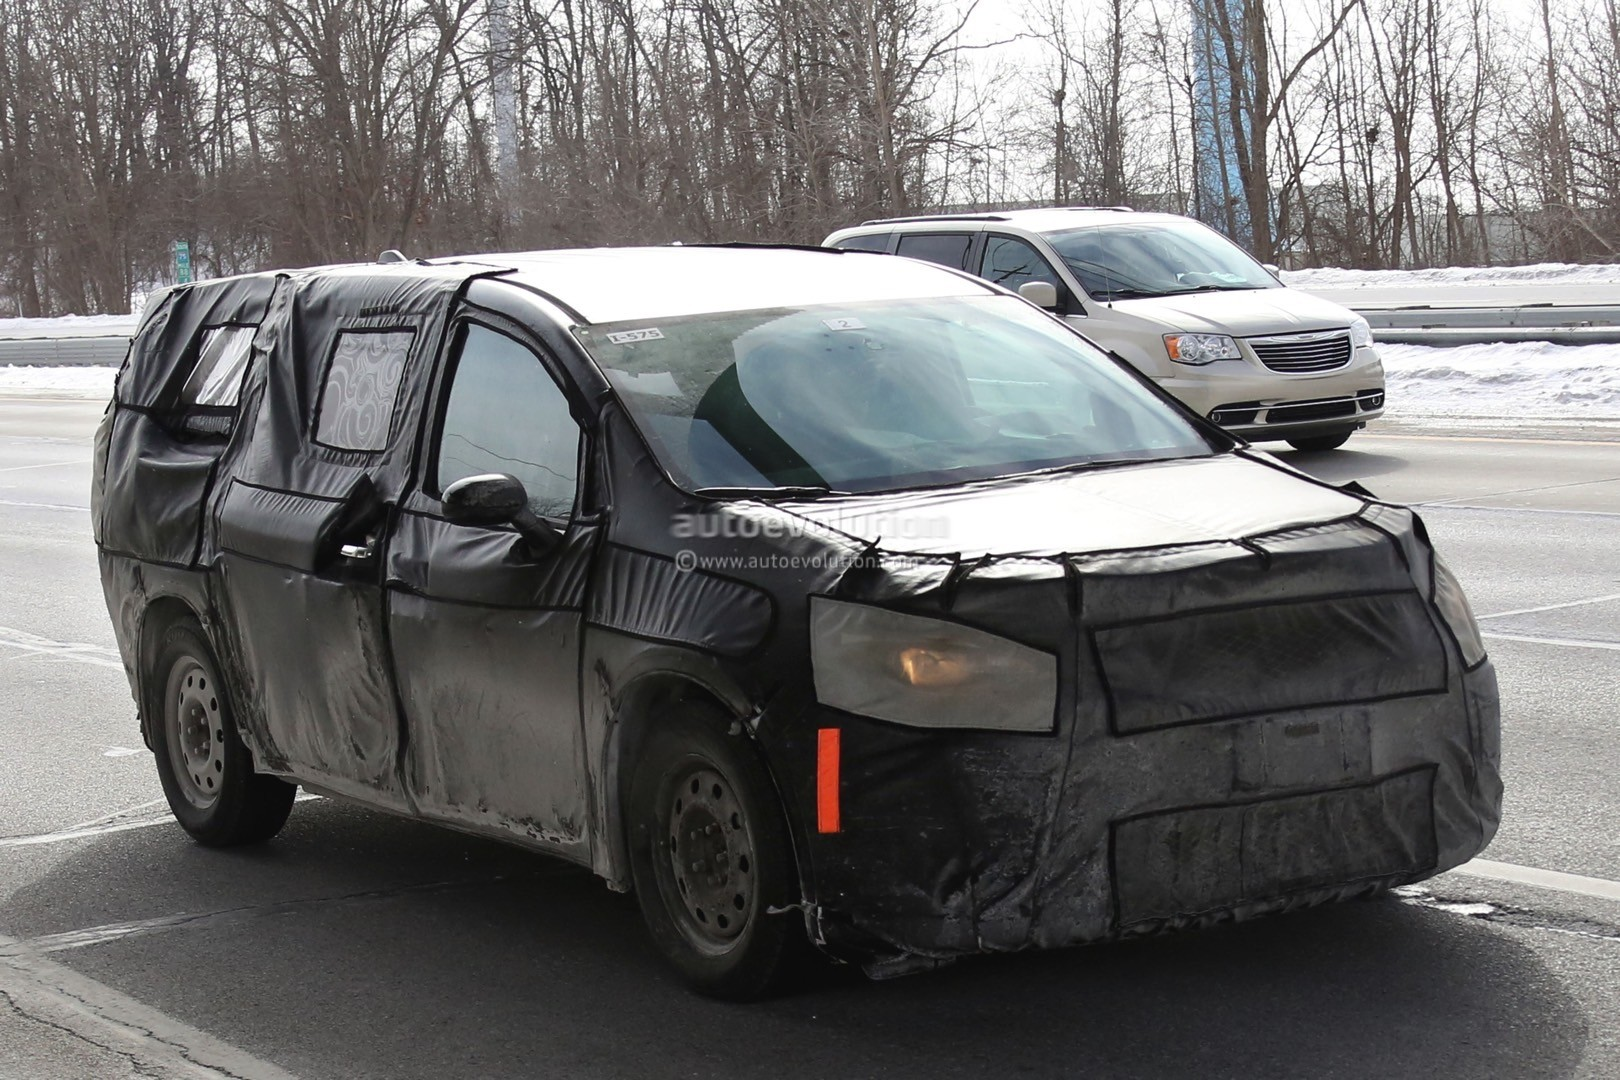 2017 Chrysler Town Amp Country Spied Inside And Out